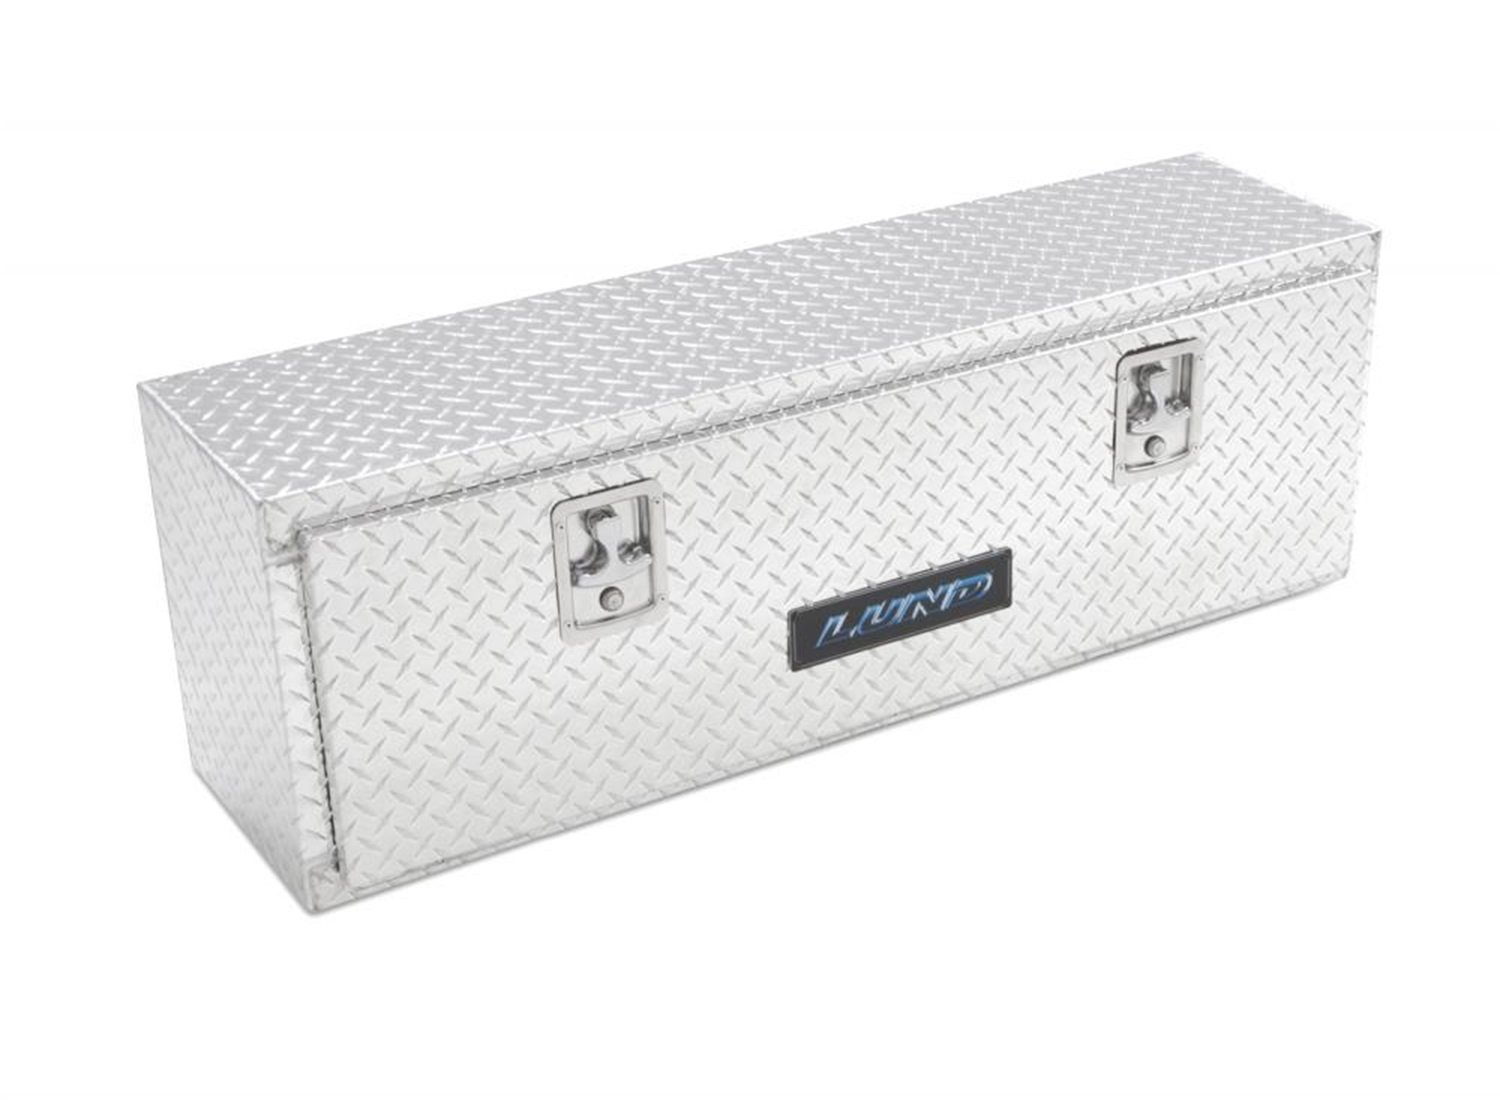 Lund 9210 60-Inch Aluminum Mid-Size Cross Bed Truck Tool Box with Full Lid Diamond Plated Silver